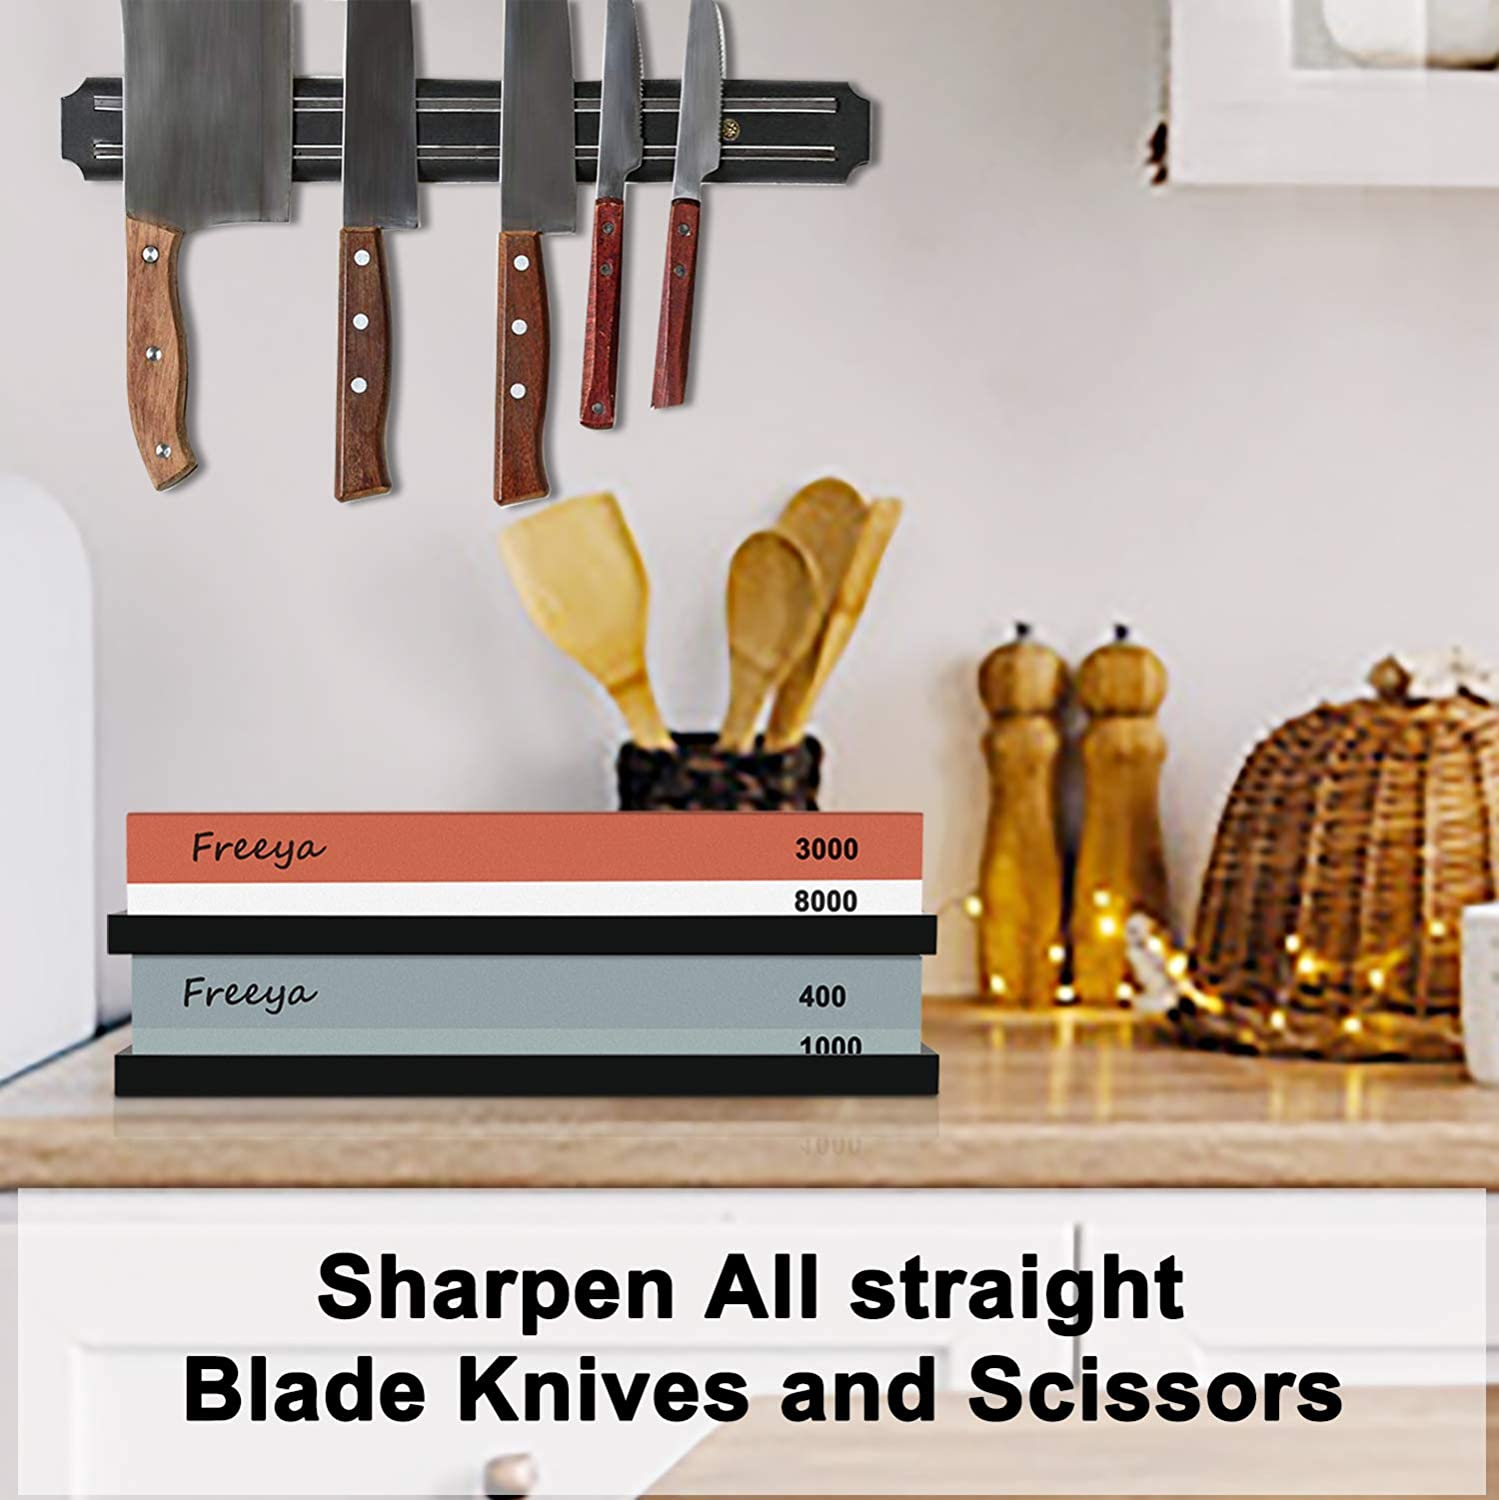 Complete Knife Sharpening Stone Set with Flattening Stone: Premium 400/1000 Grit Water Stone, 3000/8000 Grit Water Stone, Best Whetstone Knife Sharpener, Flattening Stone,NonSlip Silicone Holder,Towel: Kitchen & Dining